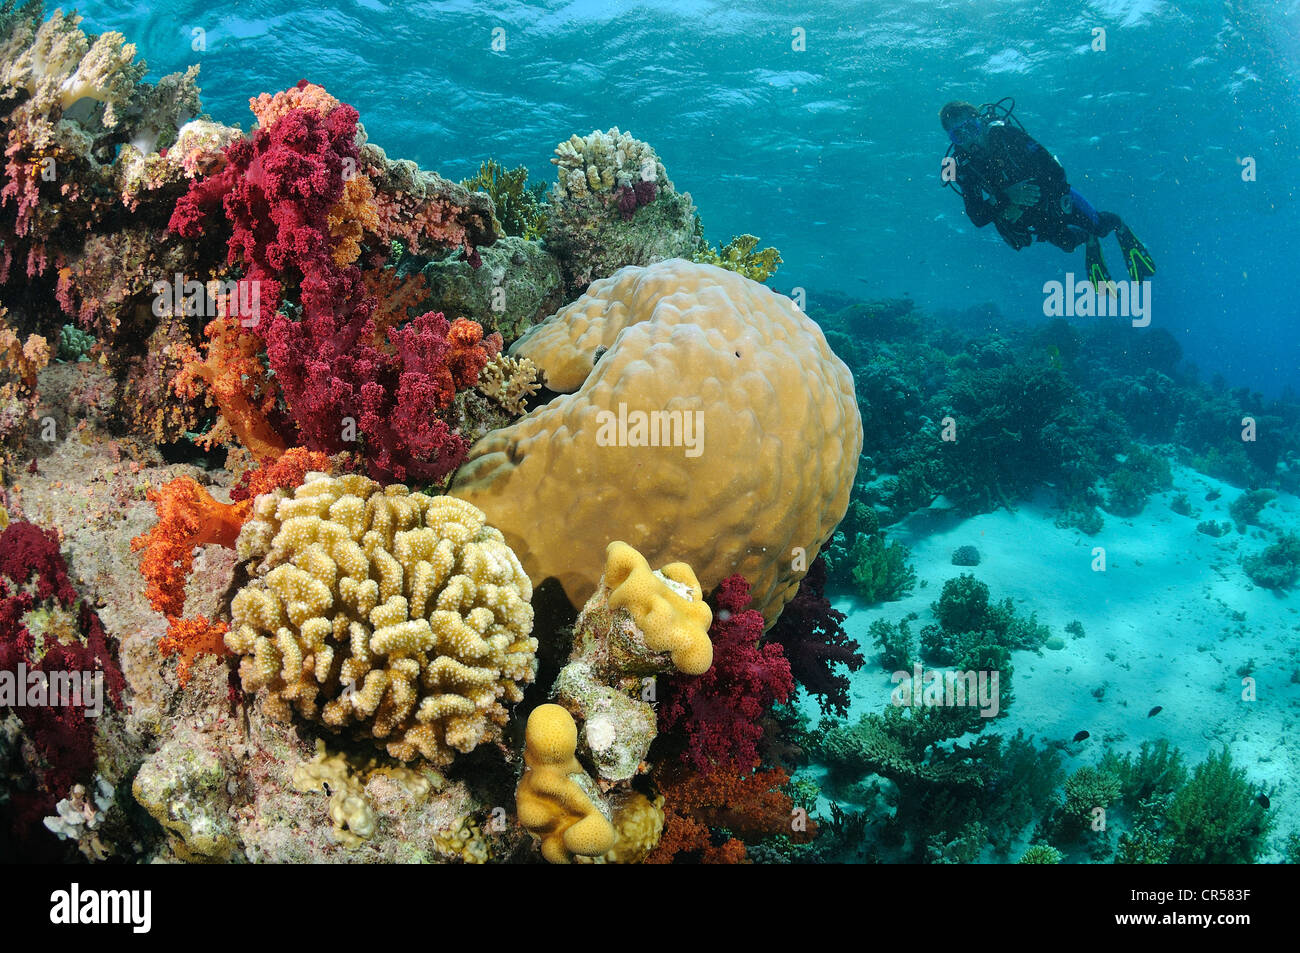 Egypt, Red Sea, a coral reef - Stock Image